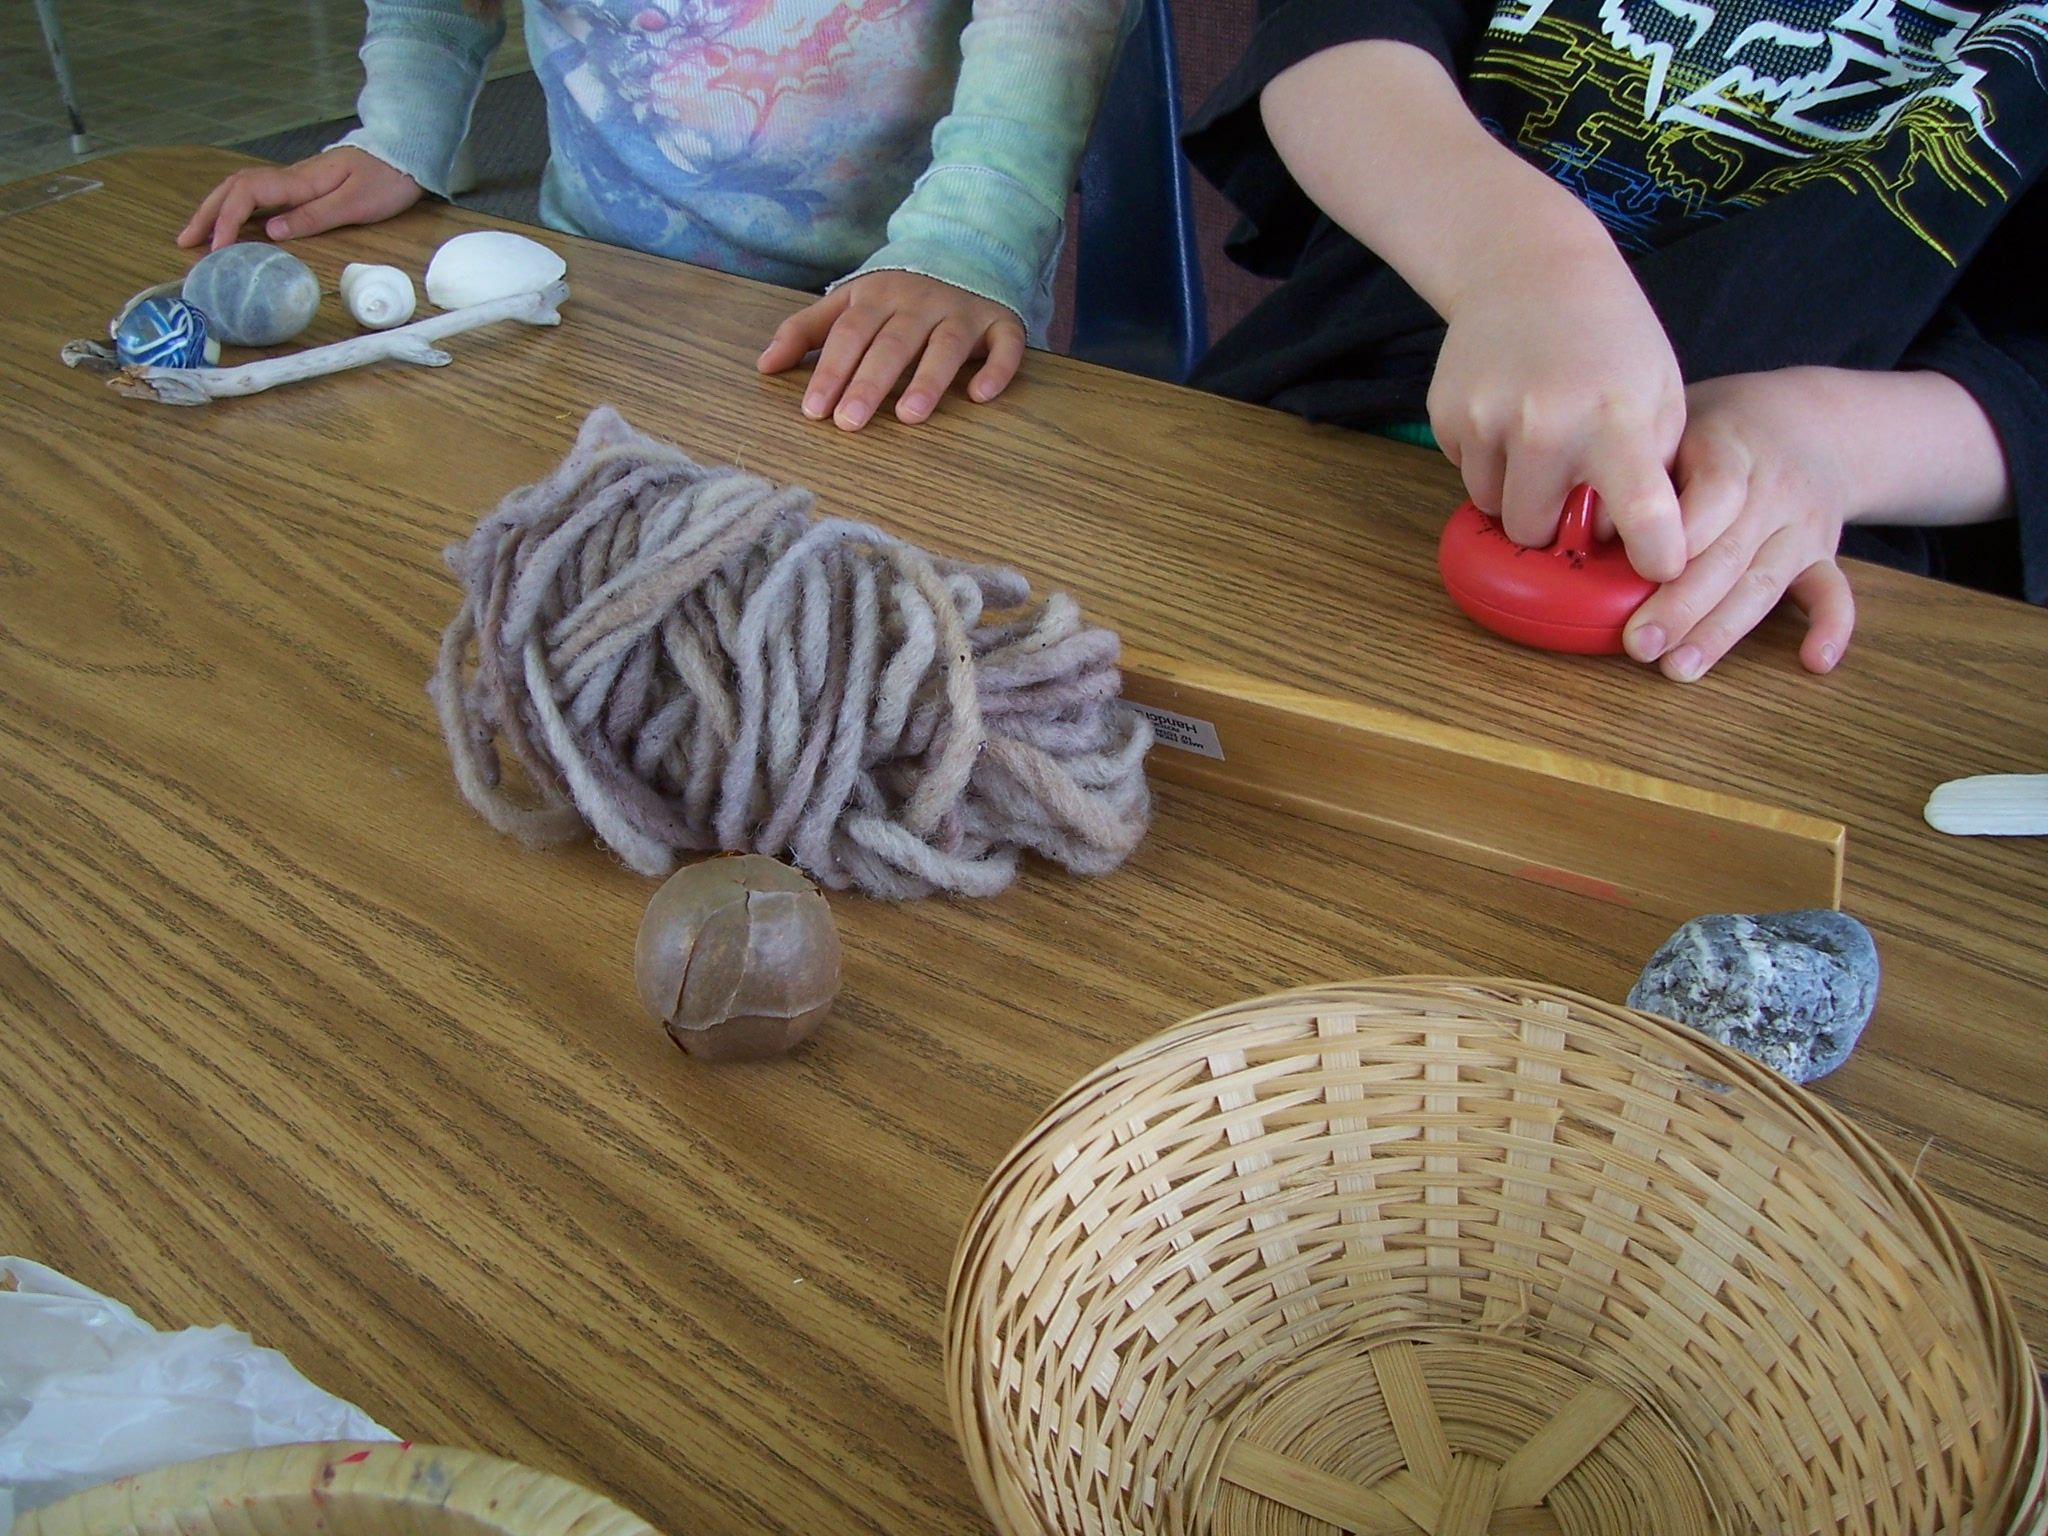 Children Can See If They Can Identify Natural Materials Vs